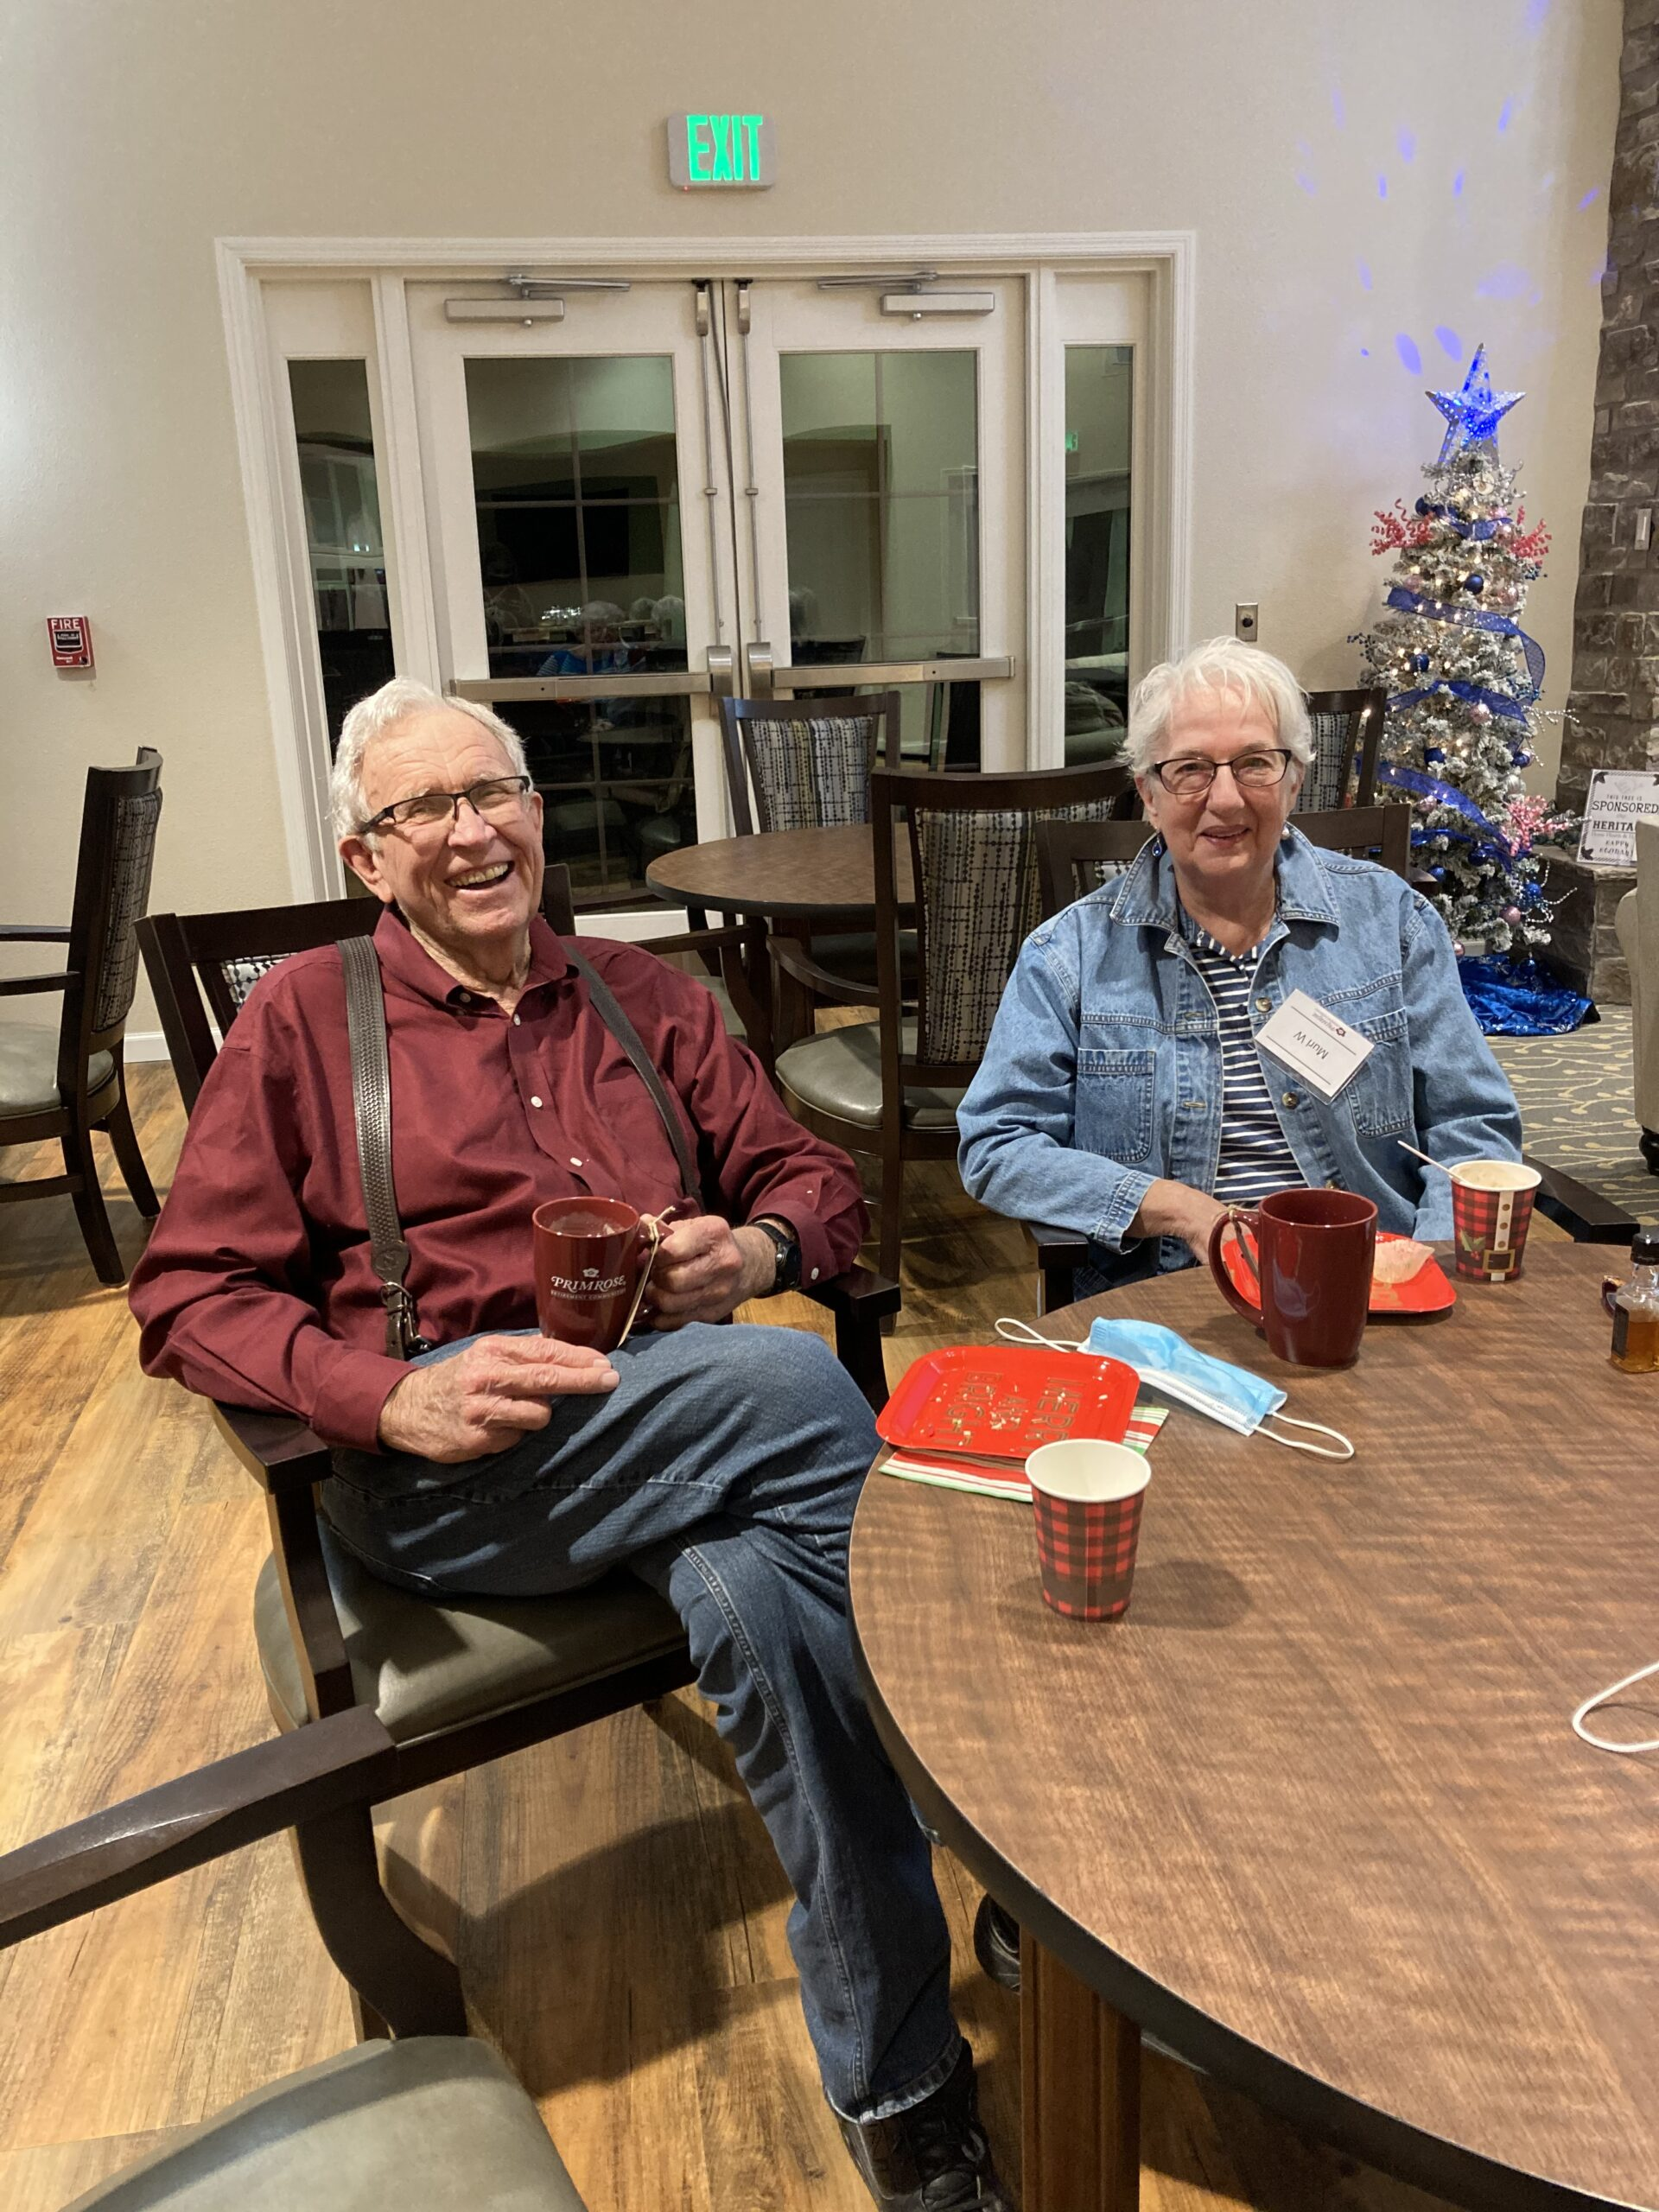 Murl and Lynn enjoying hot cocoa after a night of Christmas Lights